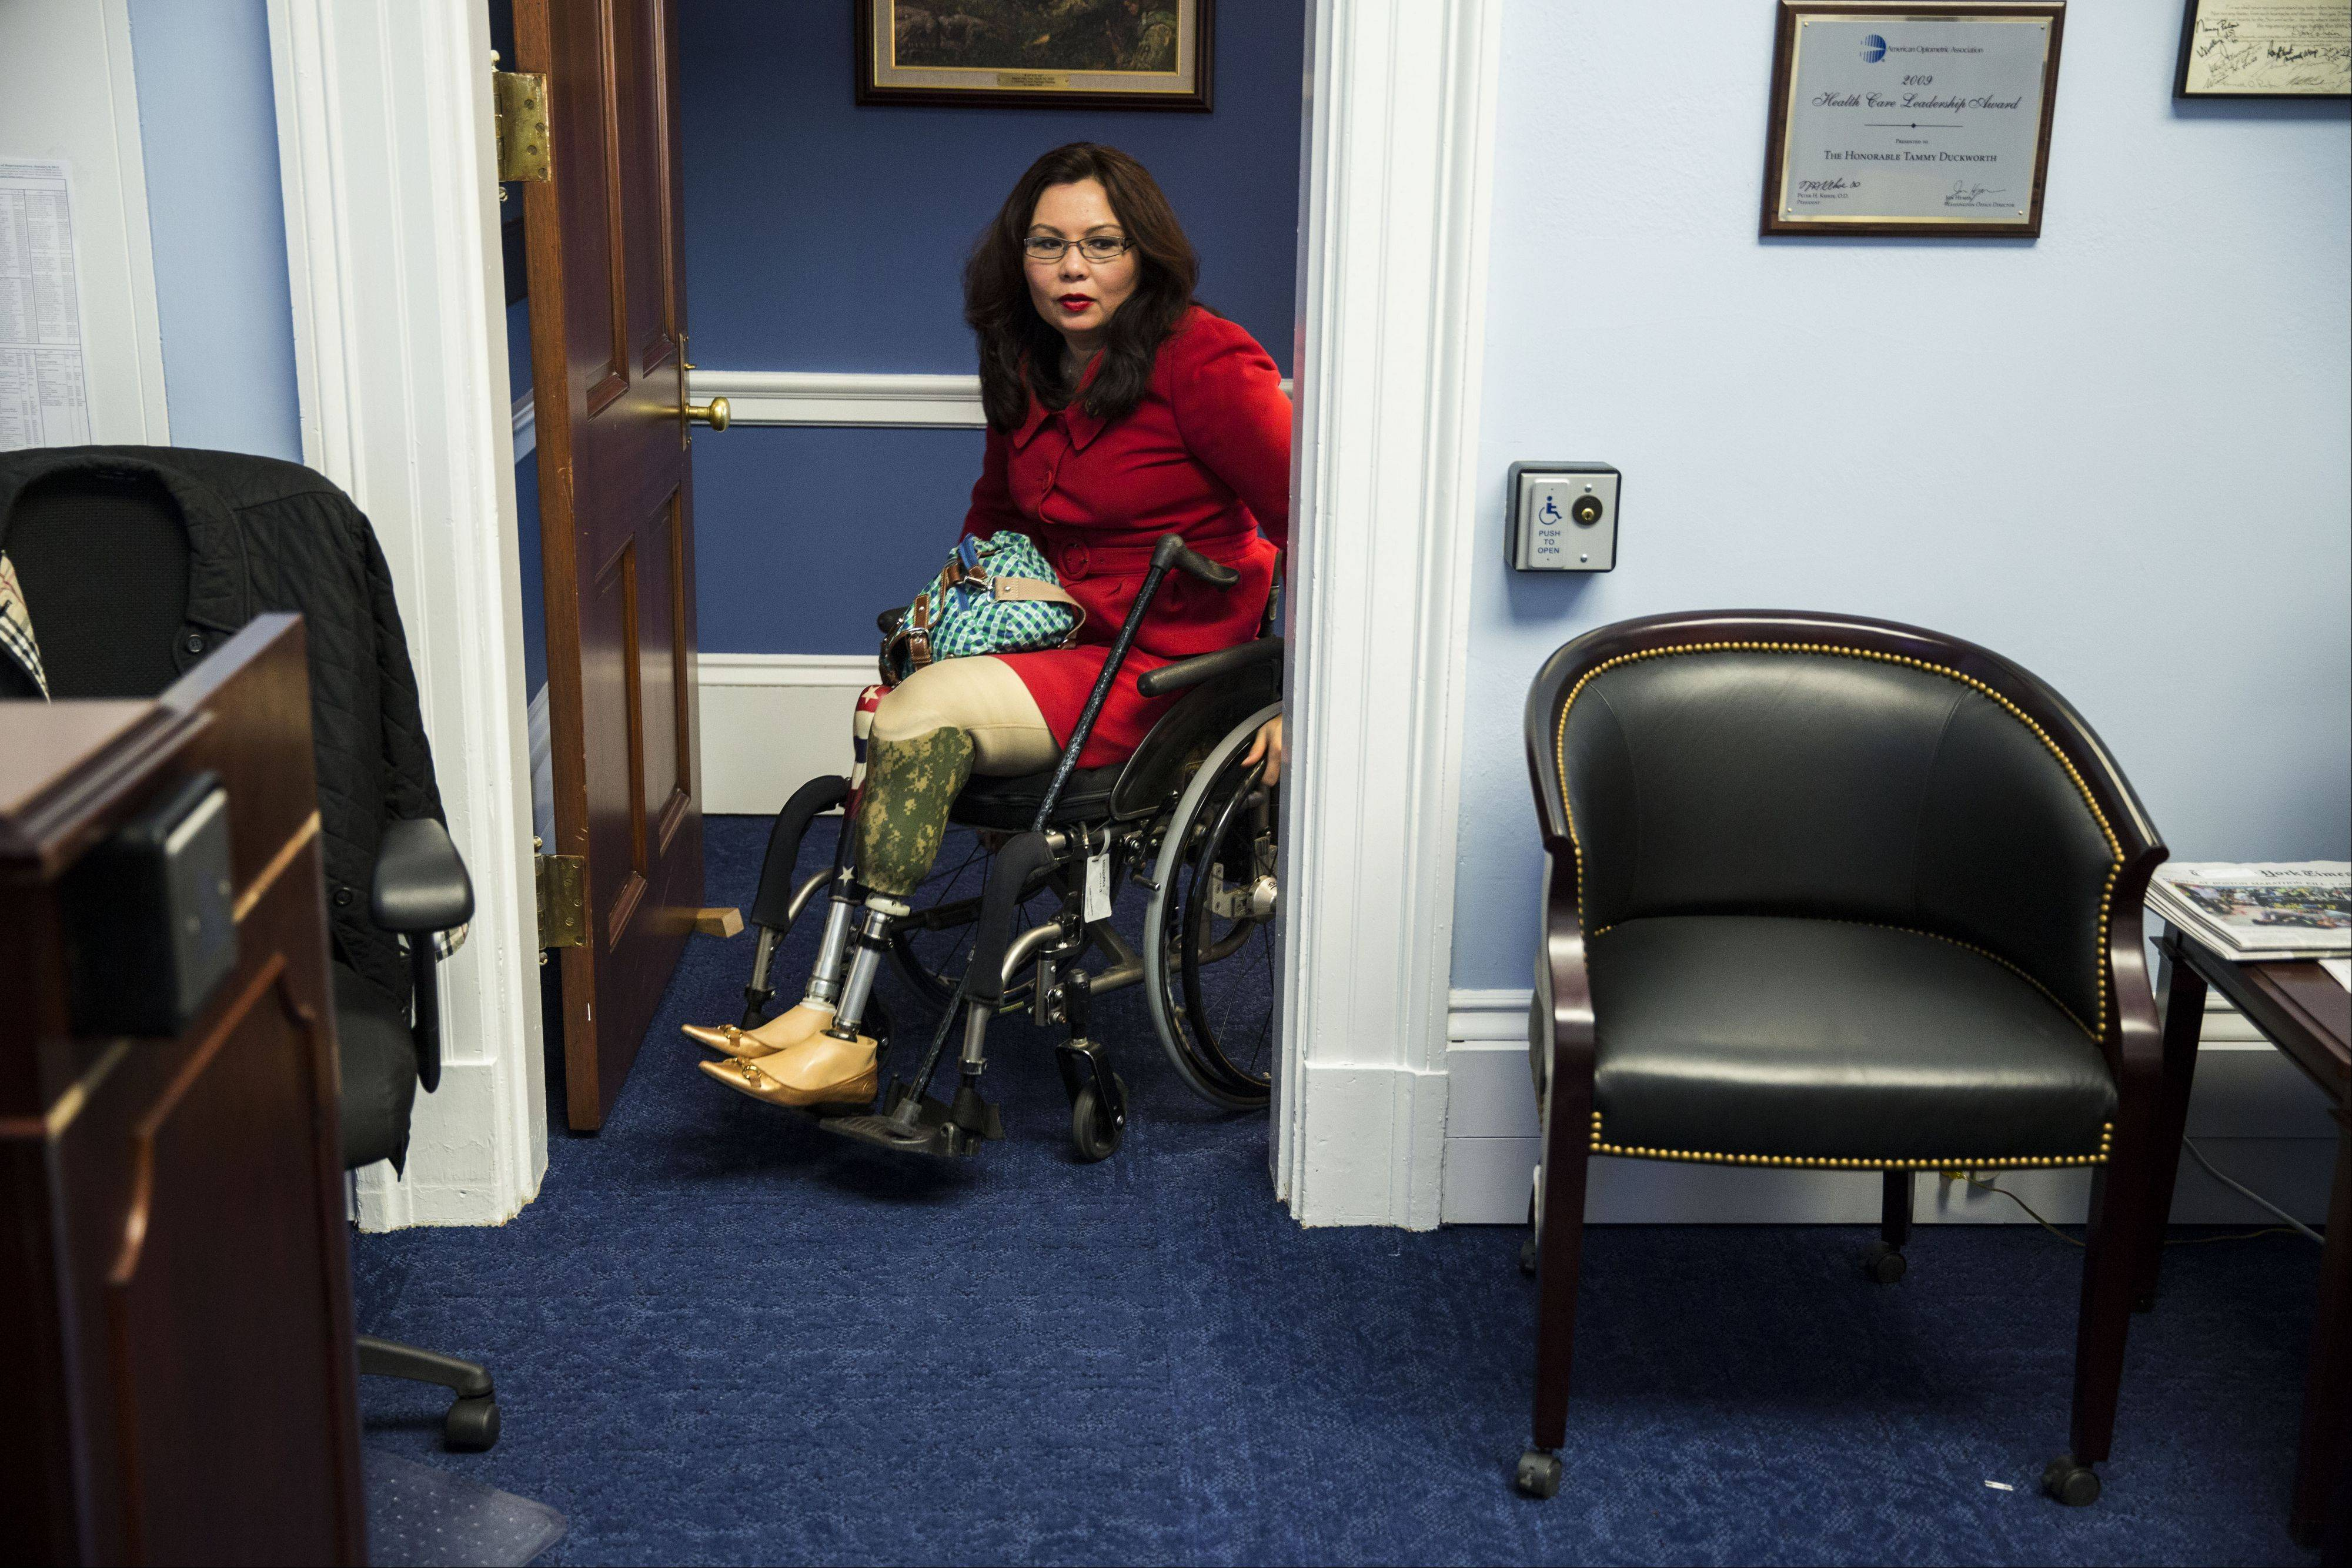 Democratic U.S. Rep. Tammy Duckworth says she made an early decision to make her entire office fully accessible to those with disabilities.